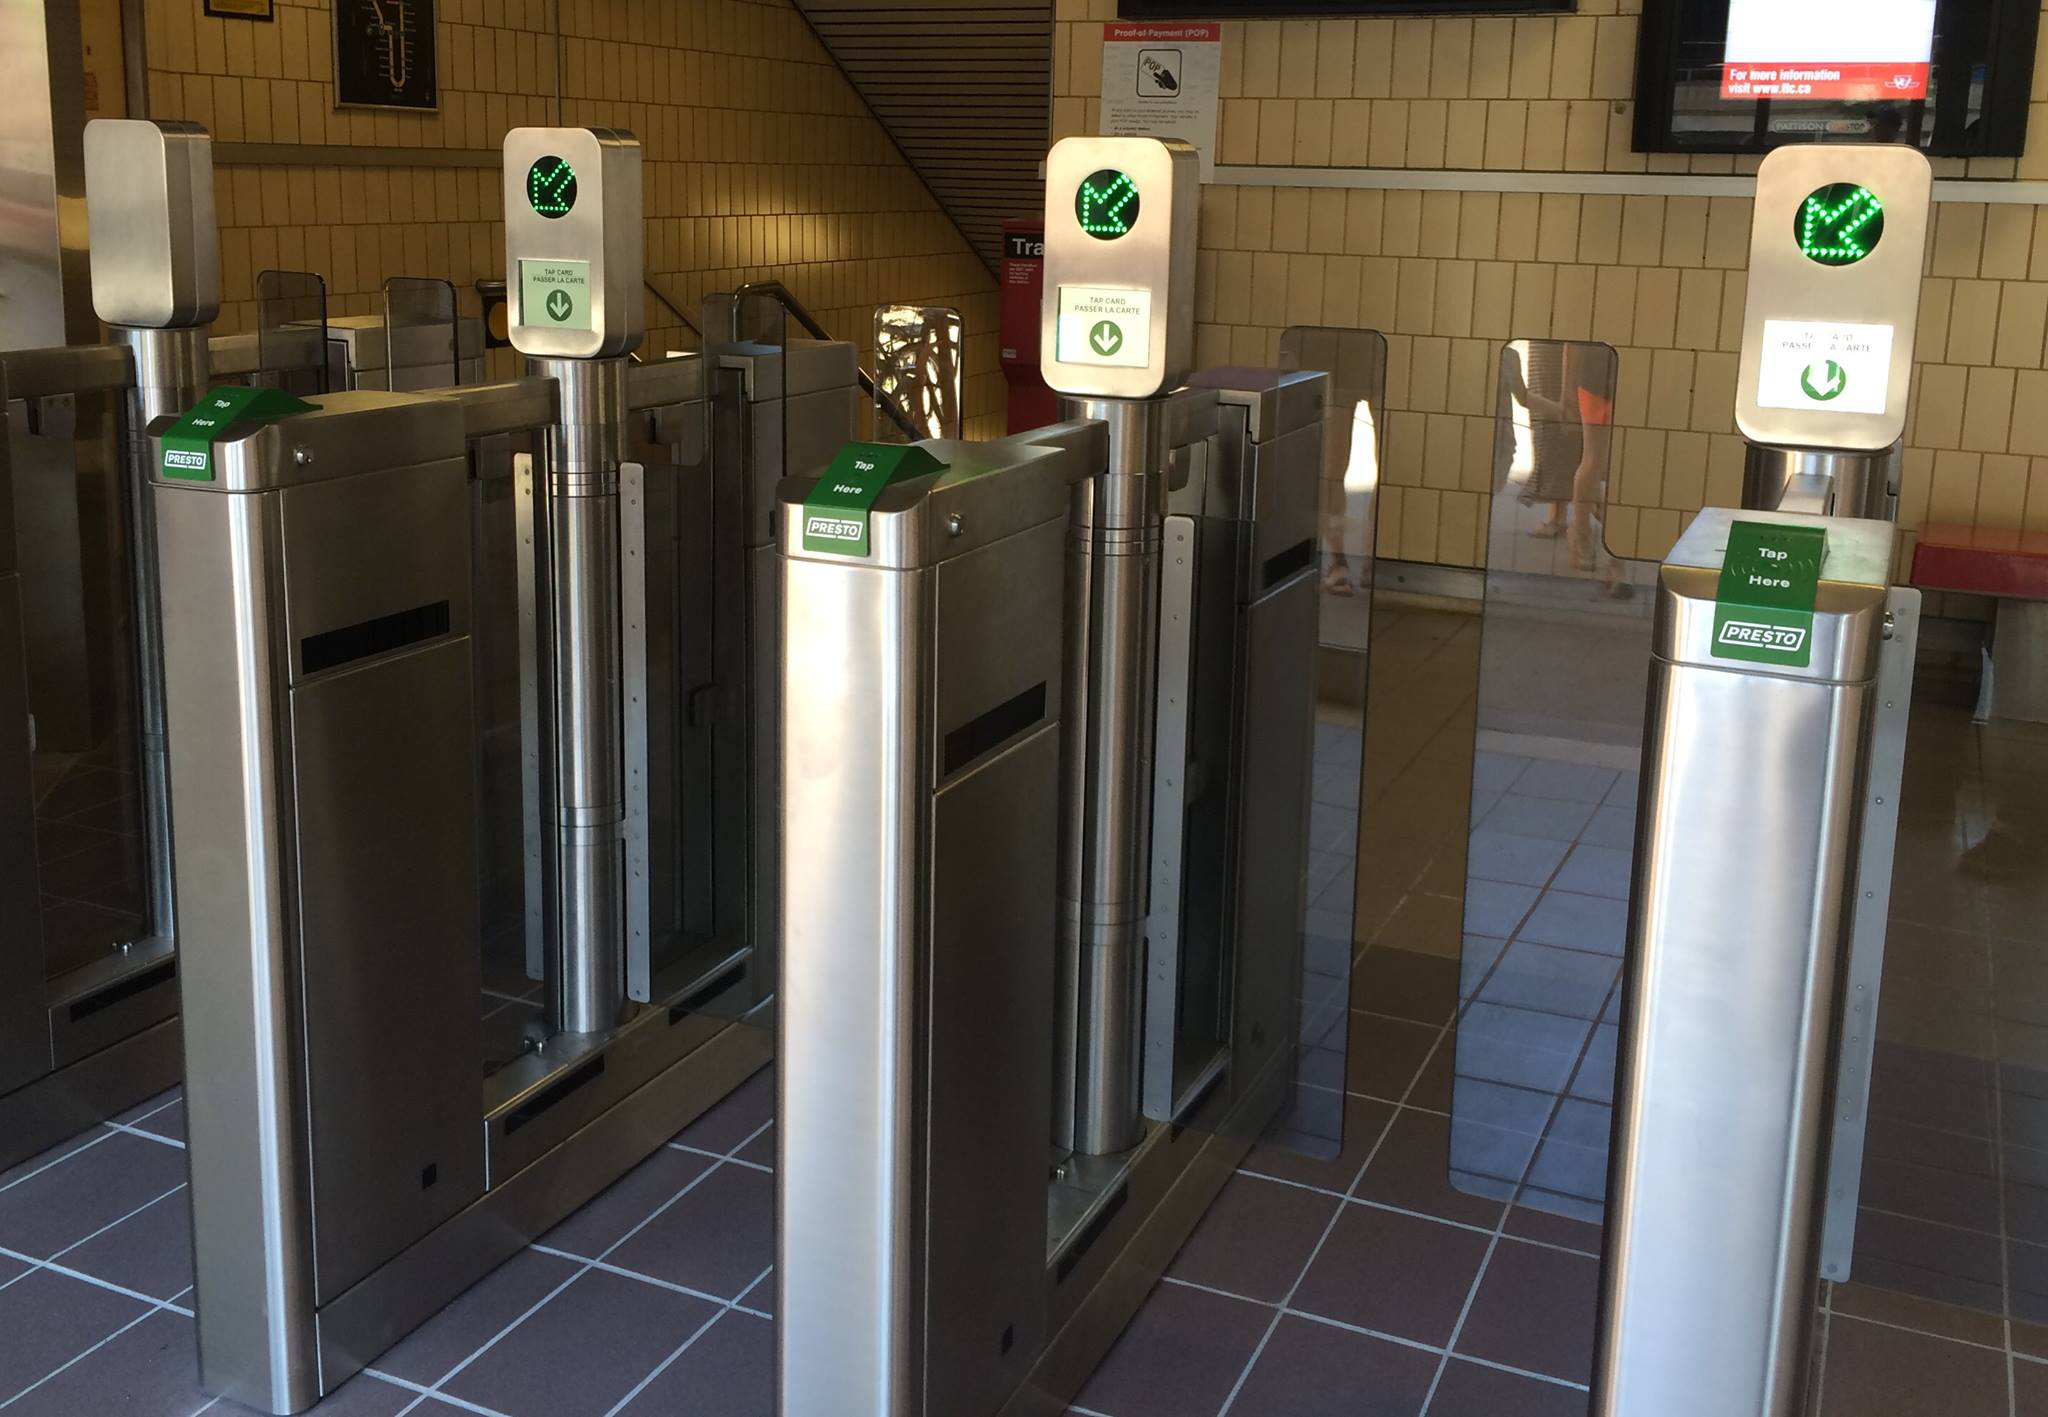 how to buy a presto card in toronto